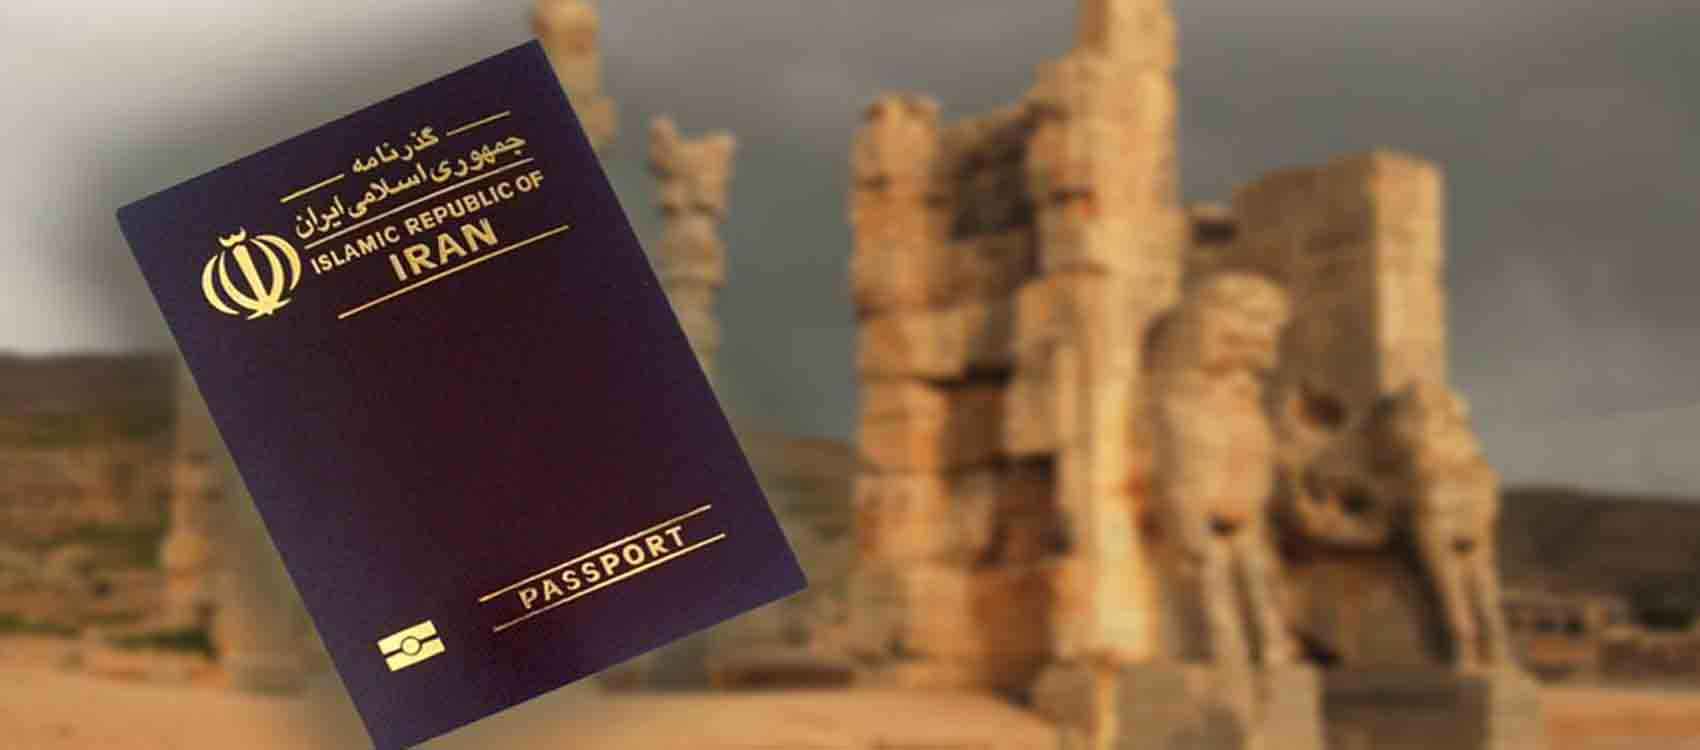 How to Apply for Iran Visa,get Iranian tourists Visa,Iran Visa,get visa to Iran,Iran e-visa,obtain visa Iran,Iran visa requirements, Iran Visa for free,Iran Visa online services,Iran tourism